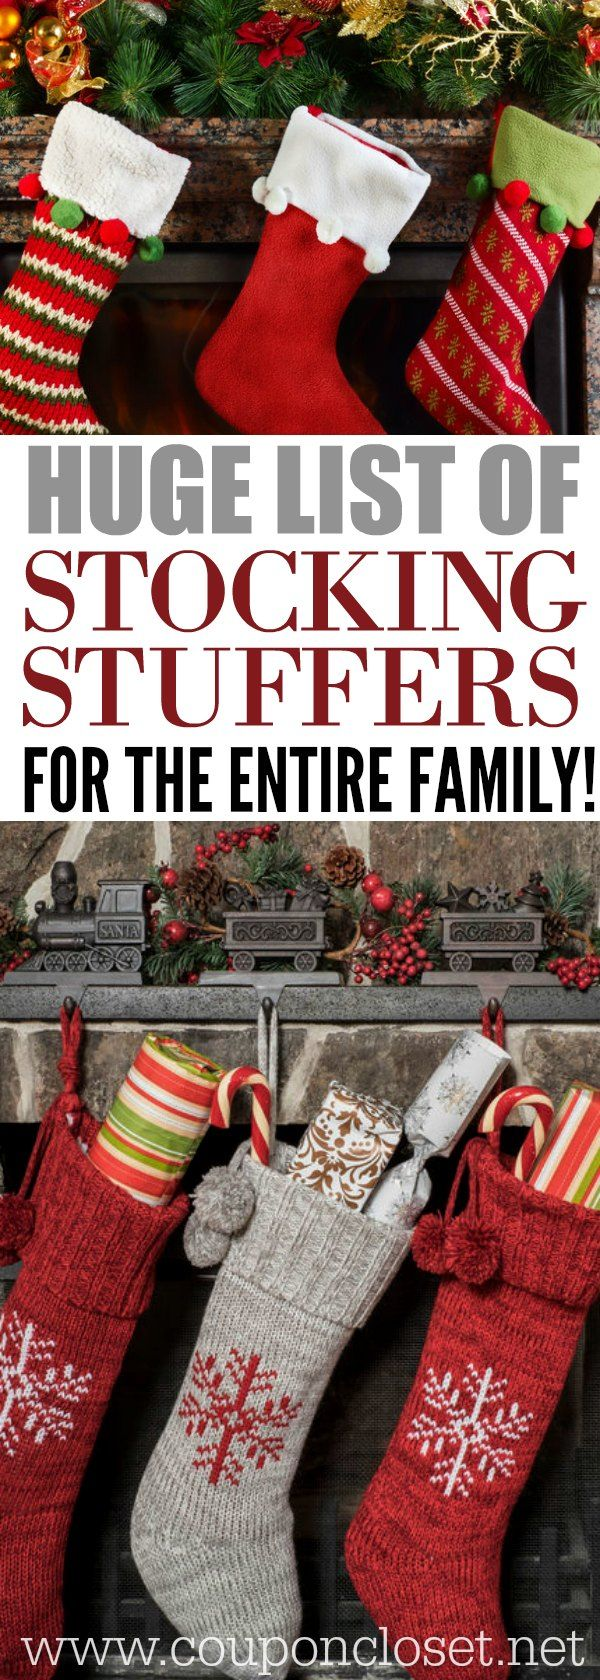 99 of the Best Christmas Stocking Stuffer ideas